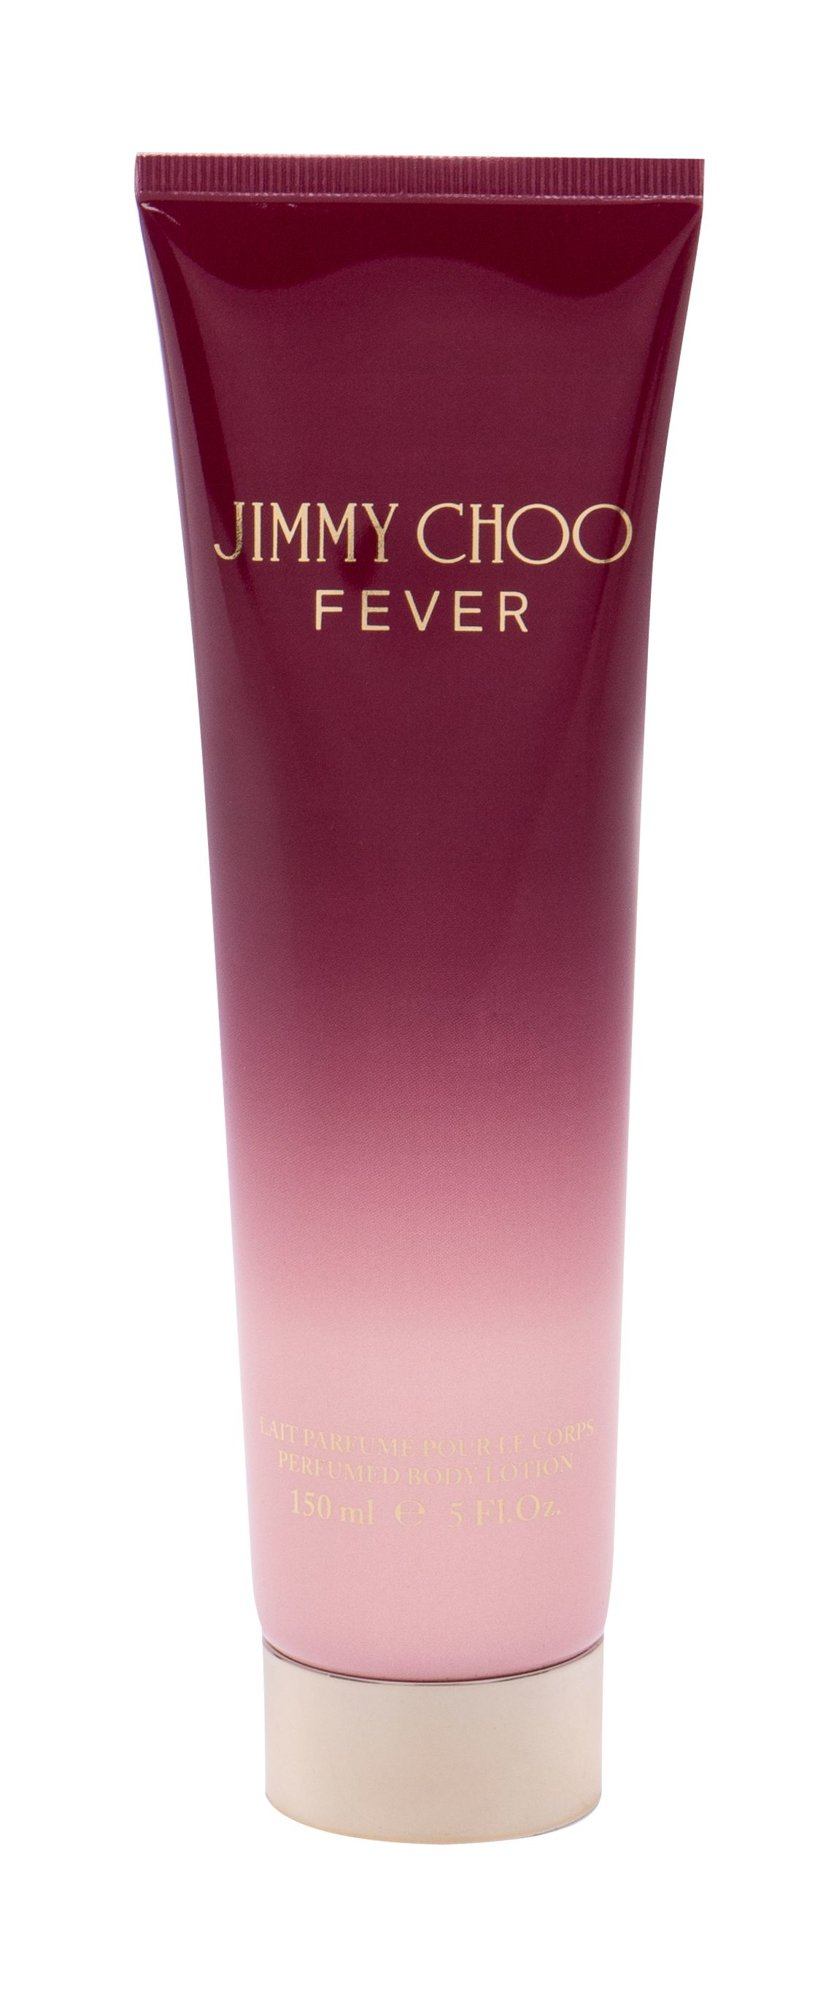 Jimmy Choo Fever Body Lotion 150ml